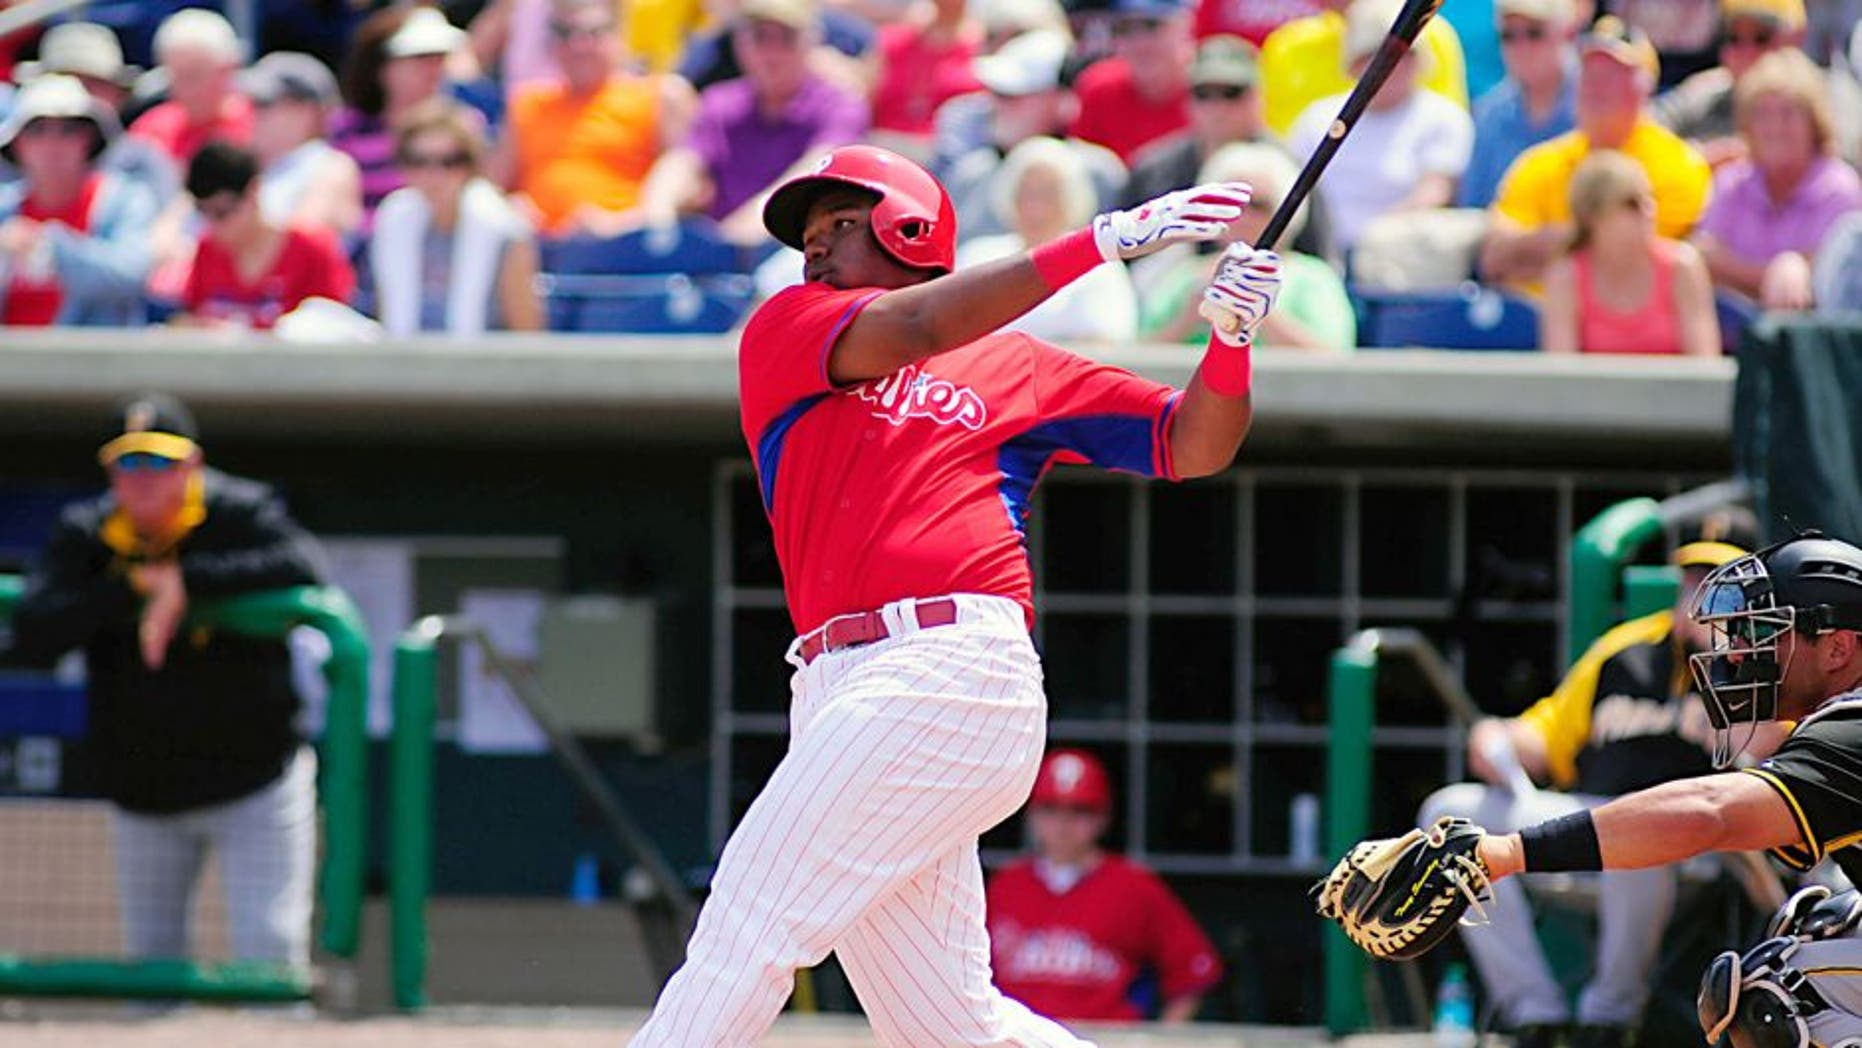 Mar 16, 2014; Clearwater, FL, USA; Philadelphia Phillies third baseman Maikel Franco (74) bats in the third inning against the Pittsburgh Pirates in a spring training exhibition at Bright House Field. Mandatory Credit: David Manning-USA TODAY Sports